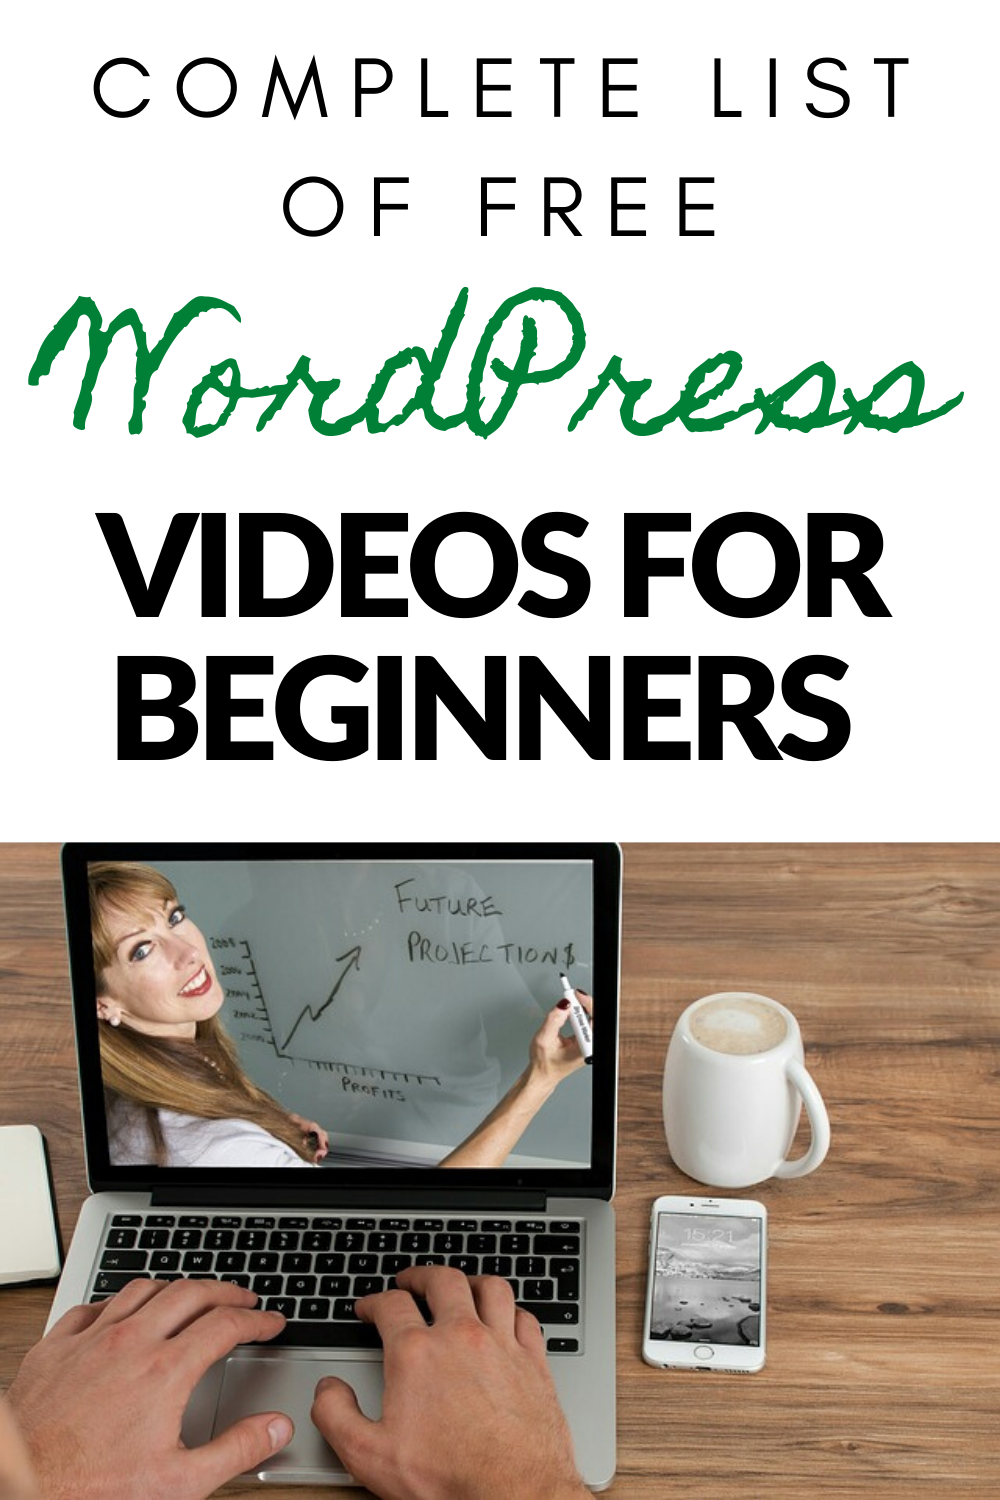 Complete List Of Free Wordpress Videos For Beginners In 2020 Free Wordpress Beginners Wordpress